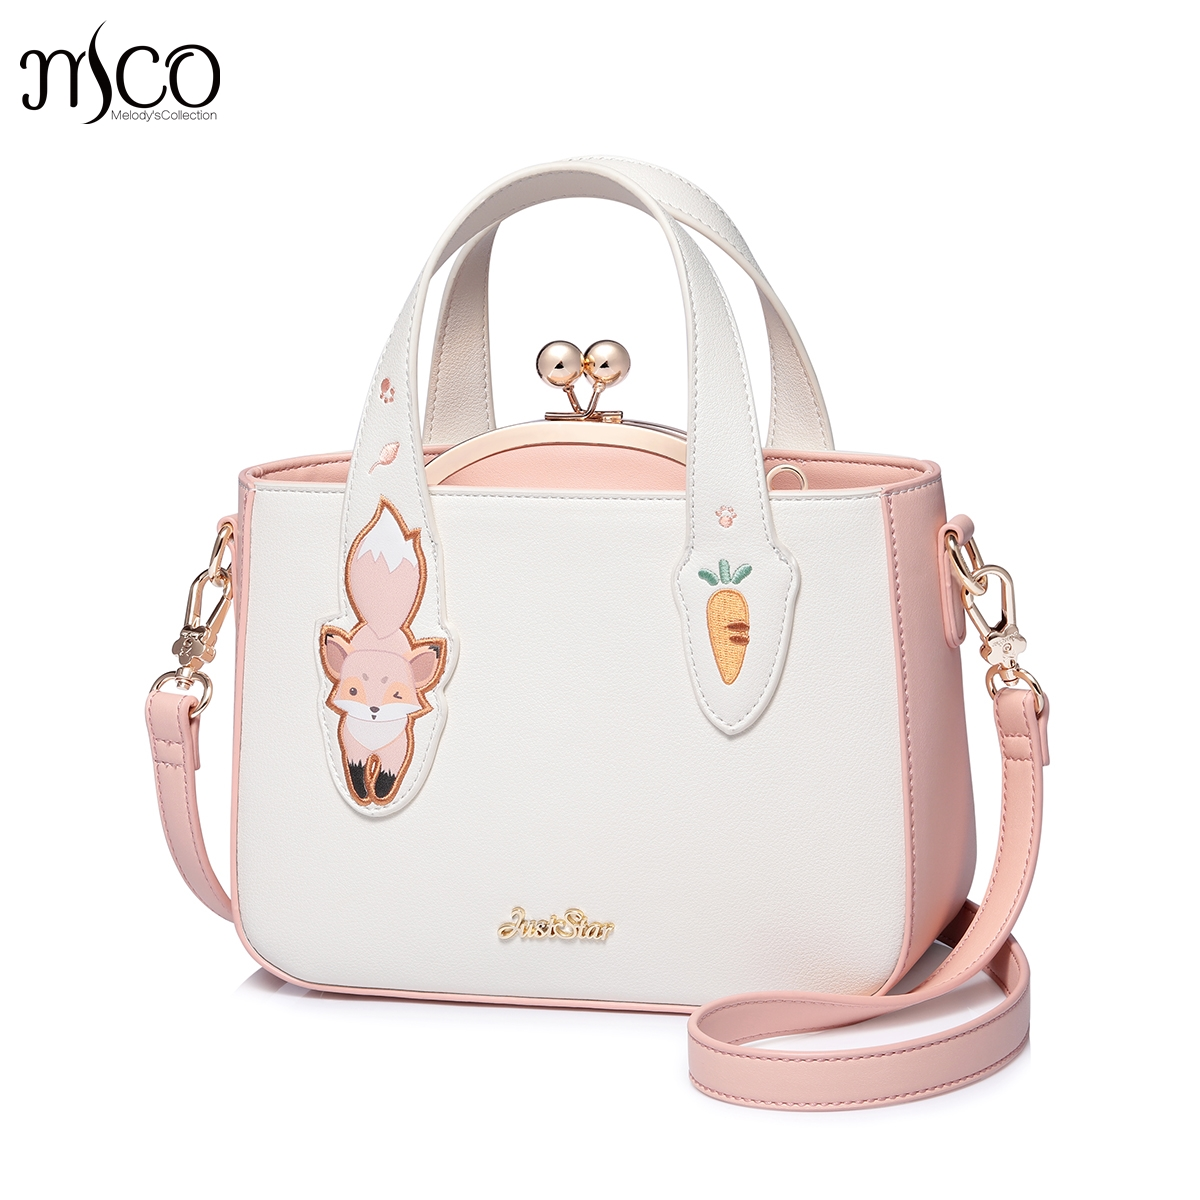 Just star Women's Leather Handbags Ladies Cartoon Squirrel Embroidery Composite Shoulder Tote Purse Female Messenger bolsas Bags джемпер женский love republic цвет светло розовый 8151182832 92 размер 42